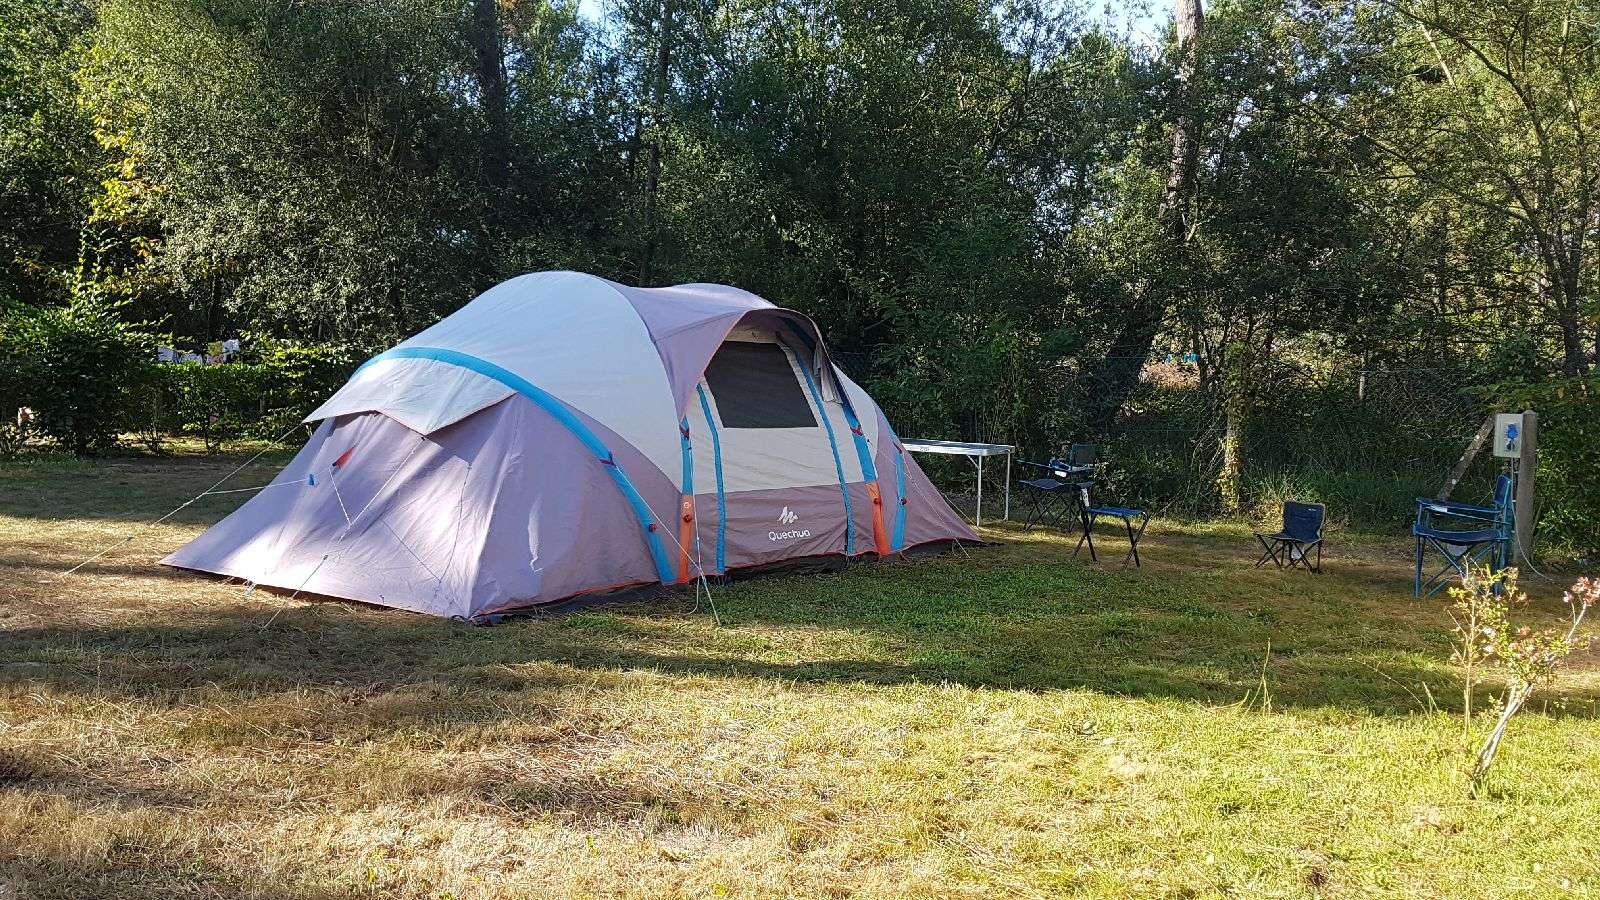 emplacement tente au camping Saint Laurent à Ploemel